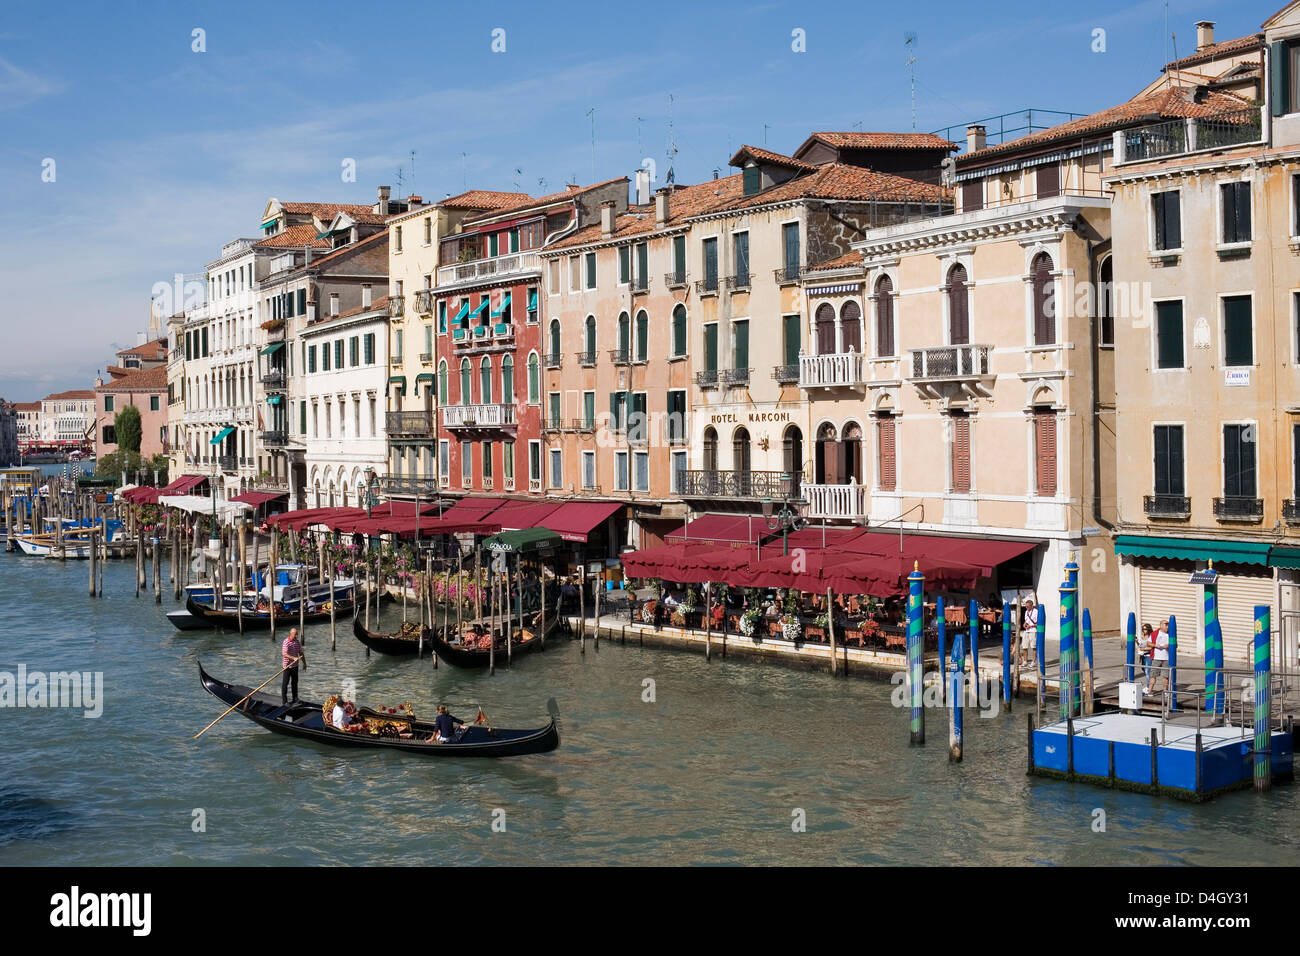 View of the Grand Canal from the Rialto Bridge, Venice, UNESCO World Heritage Site, Veneto, Italy Stock Photo